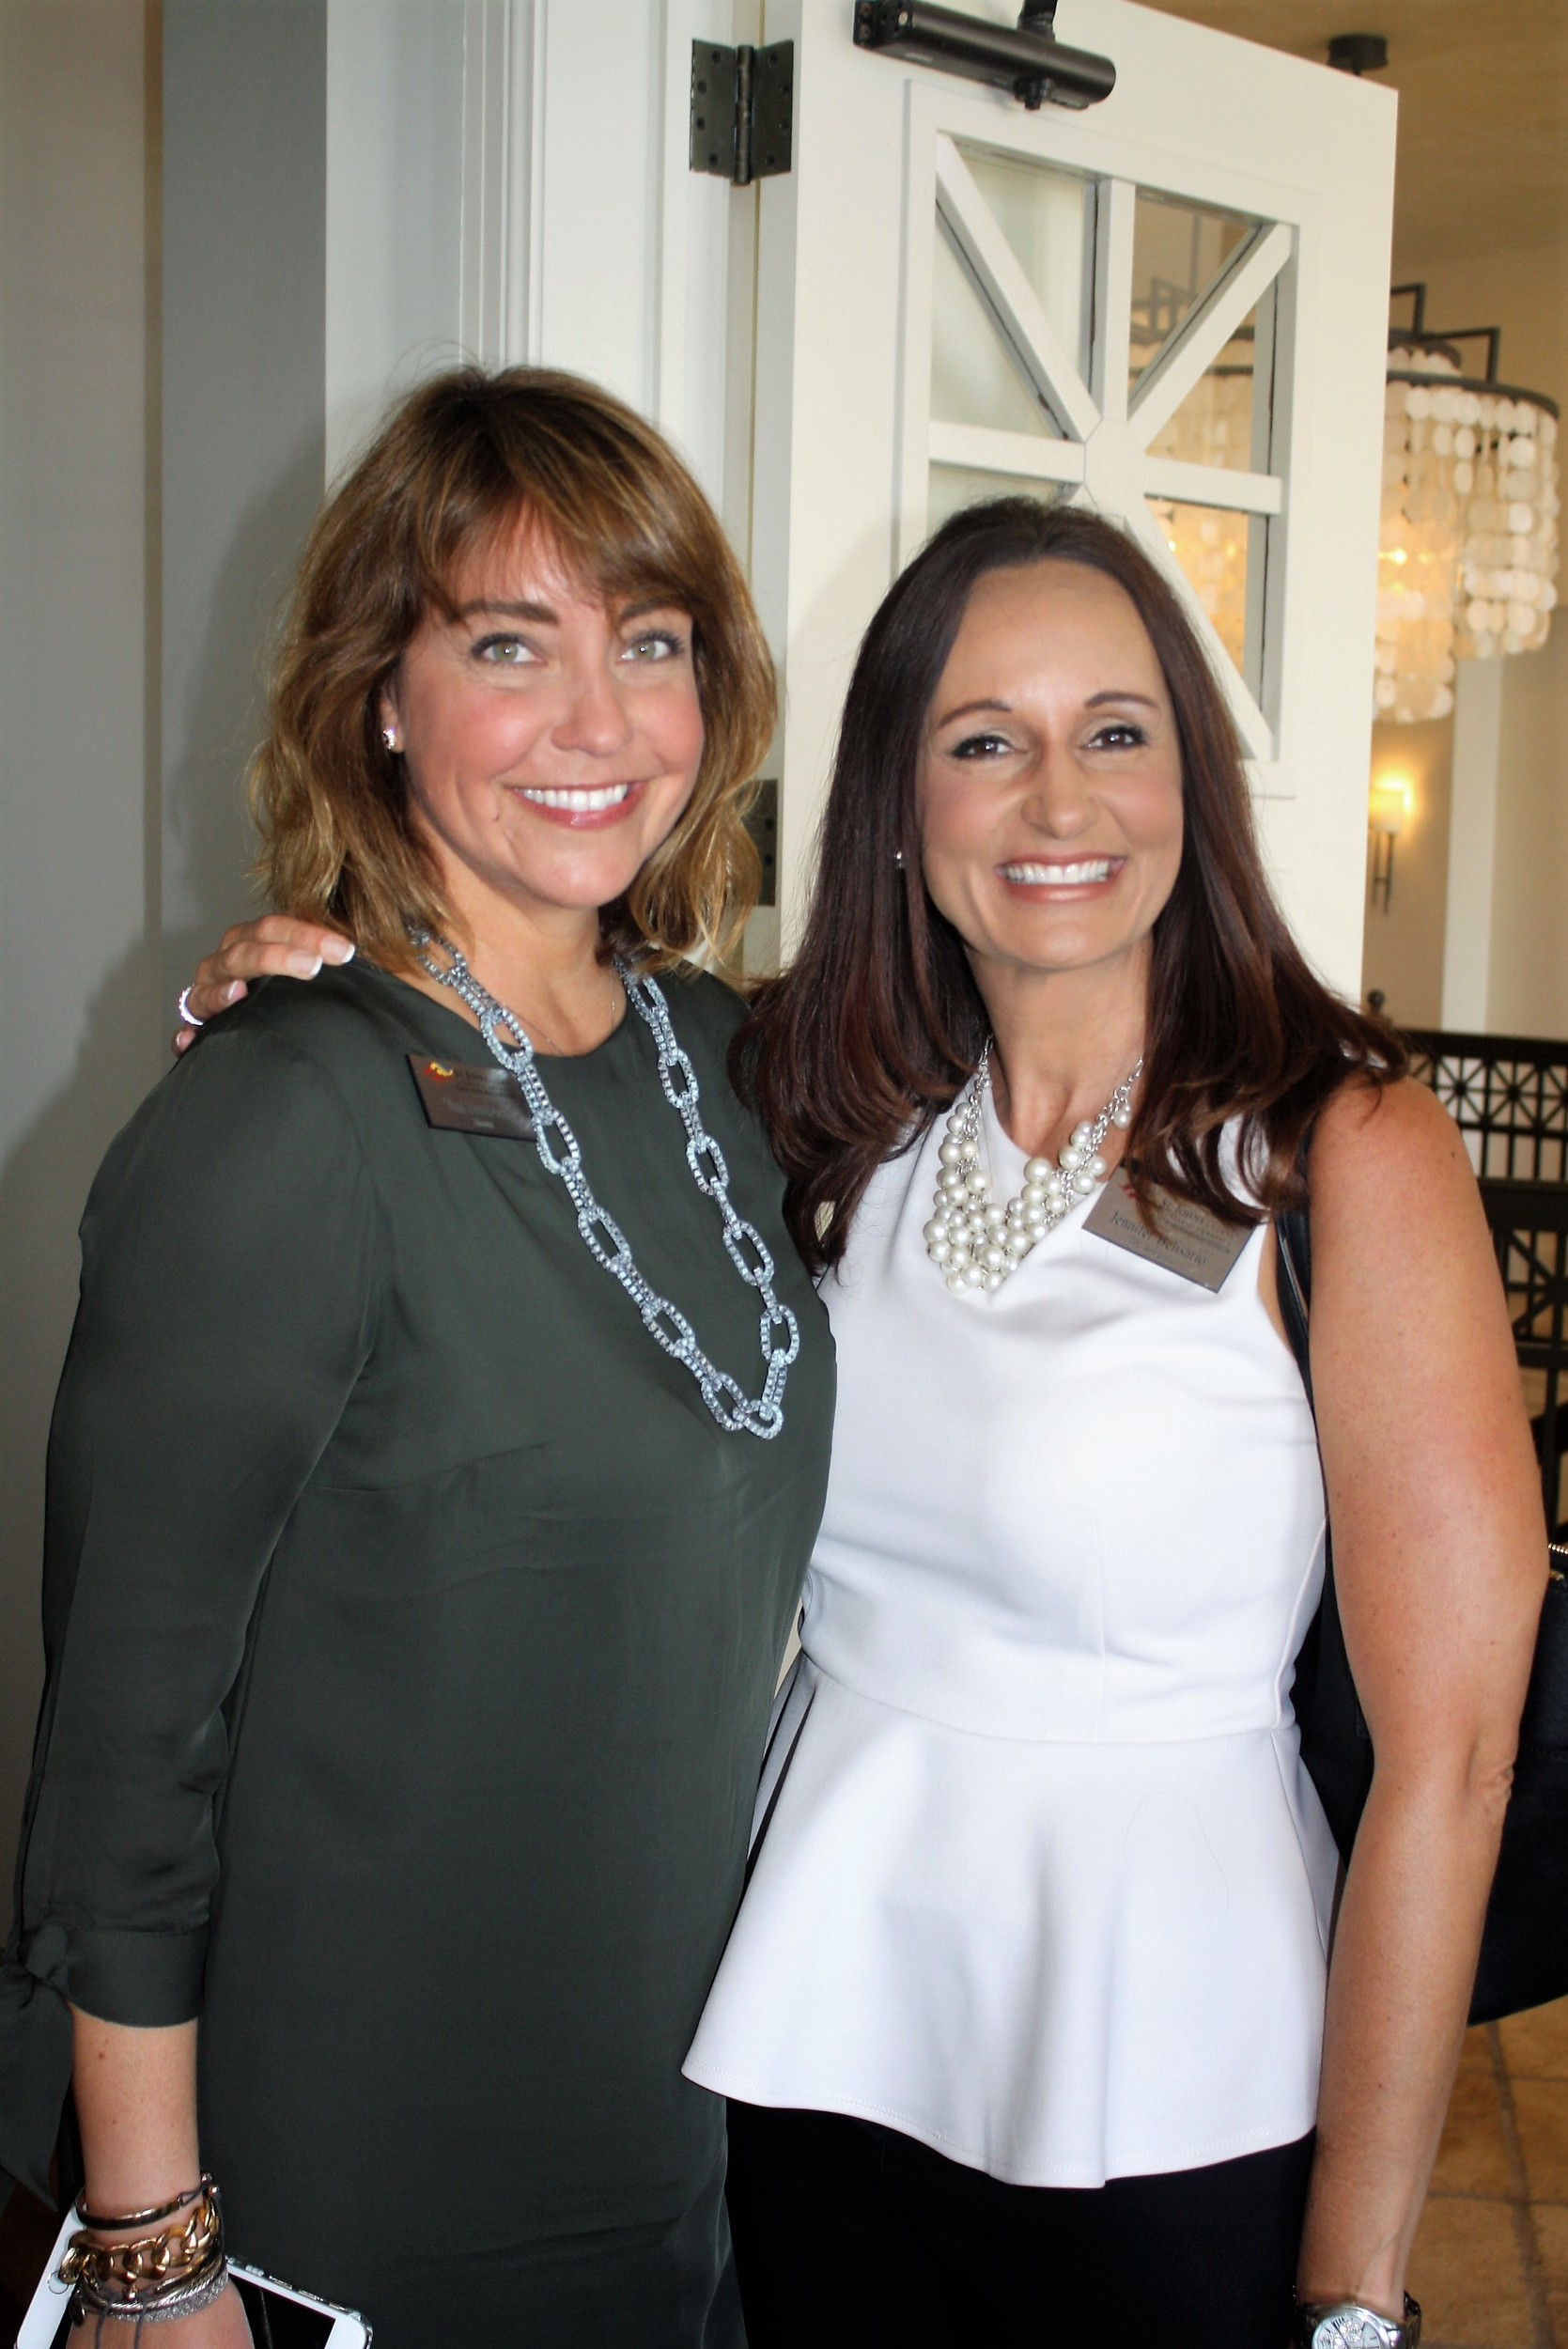 Toni Boudreaux and Jennifer Belisario